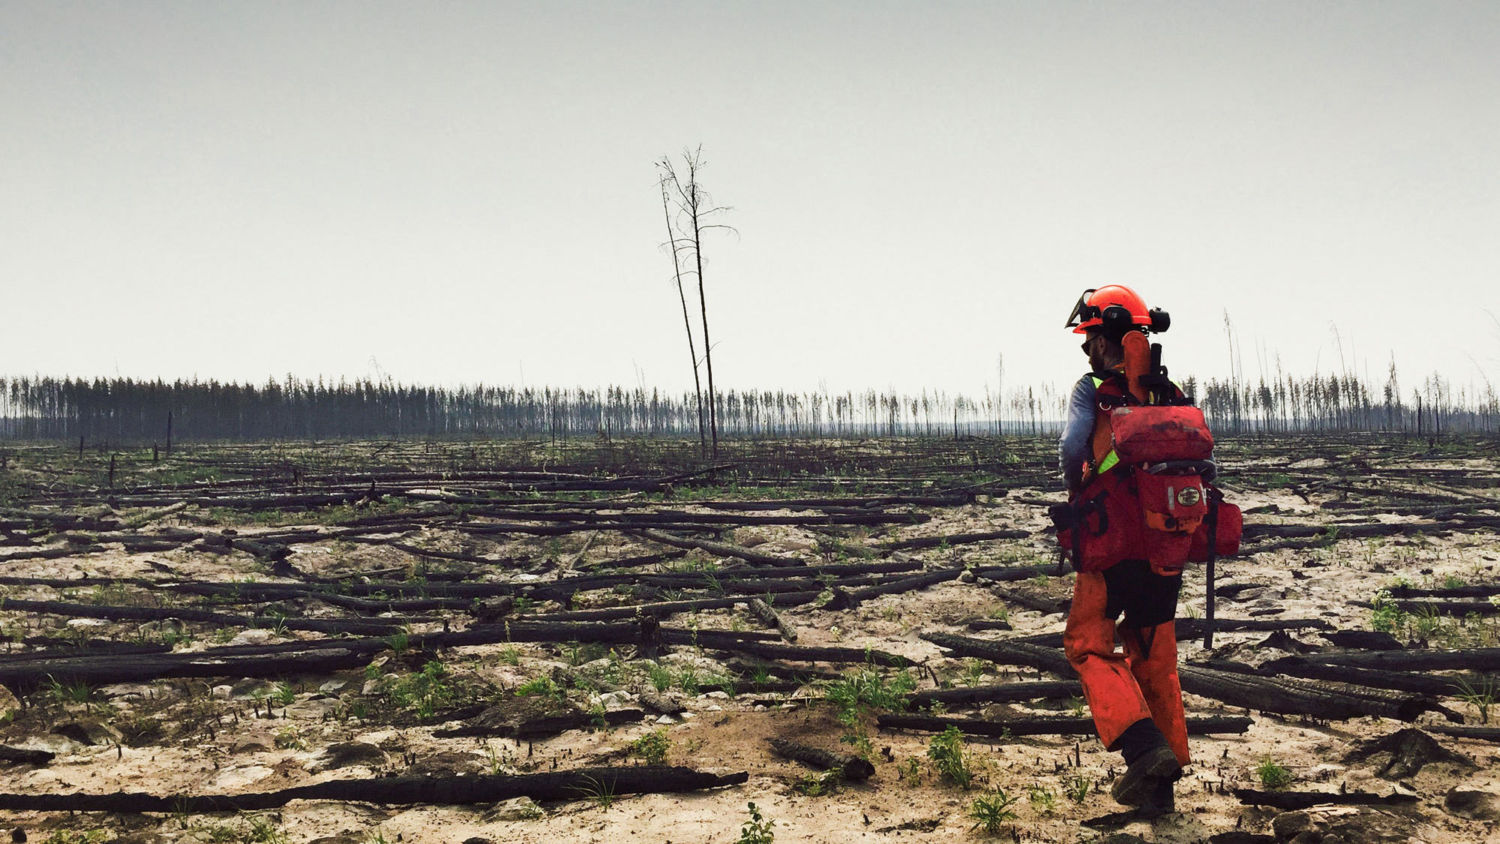 Does a Fire-Ravaged Forest Need Human Help to Recover